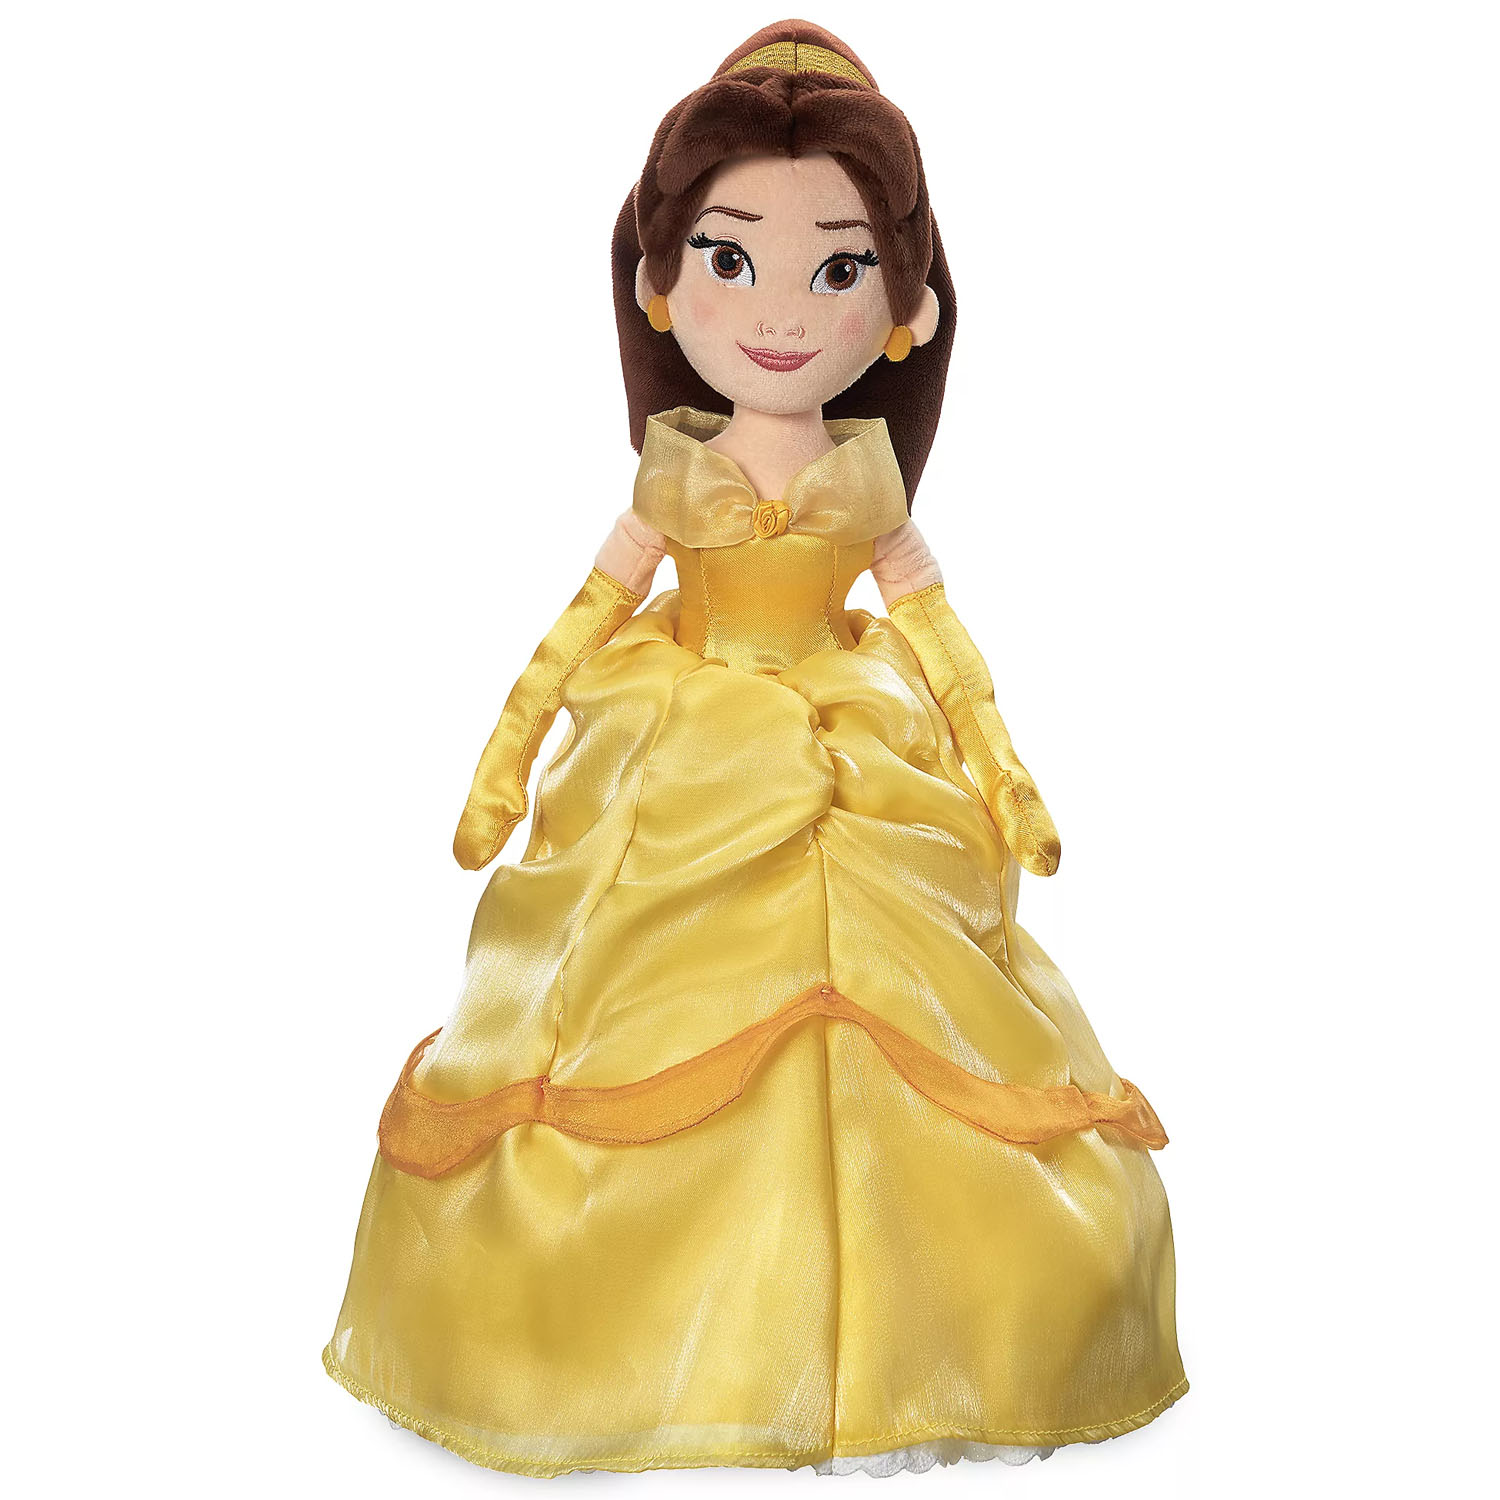 Disney Princess Beauty & The Beast Large Belle Plush Doll